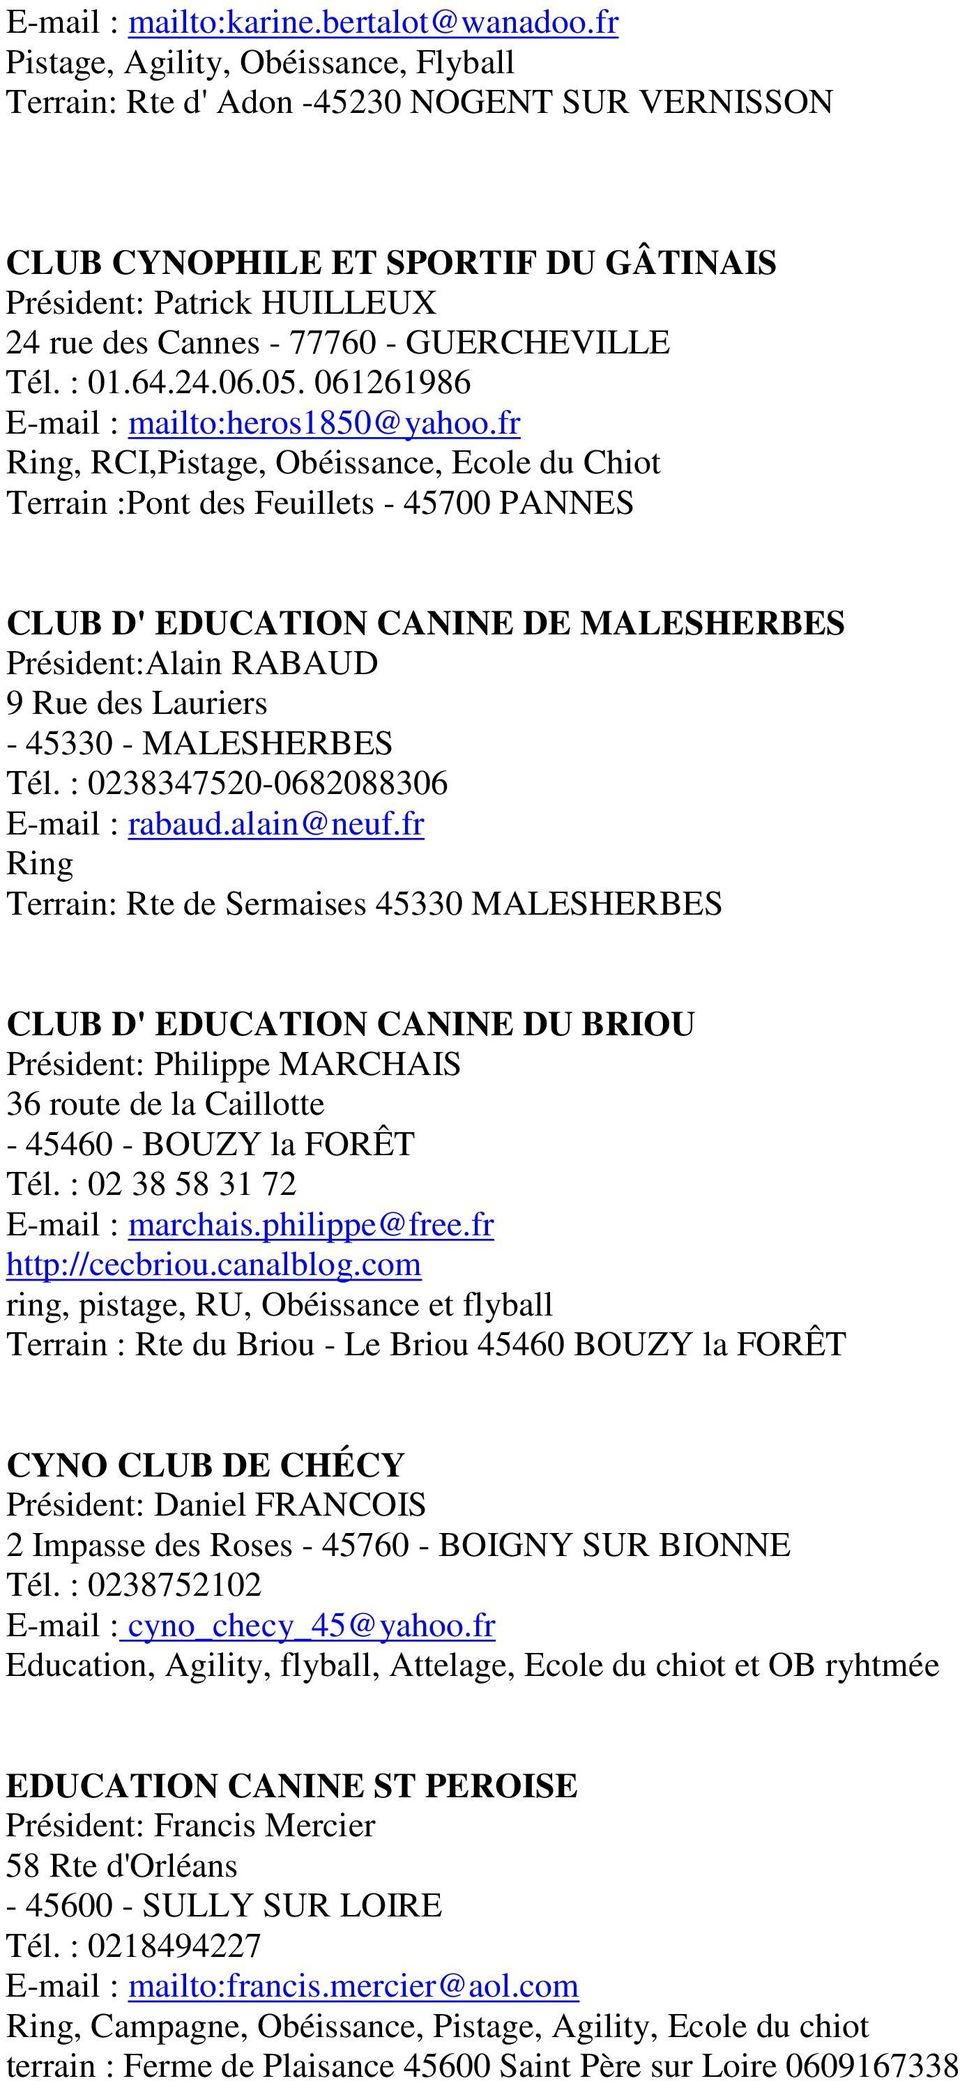 club canin nogent sur vernisson